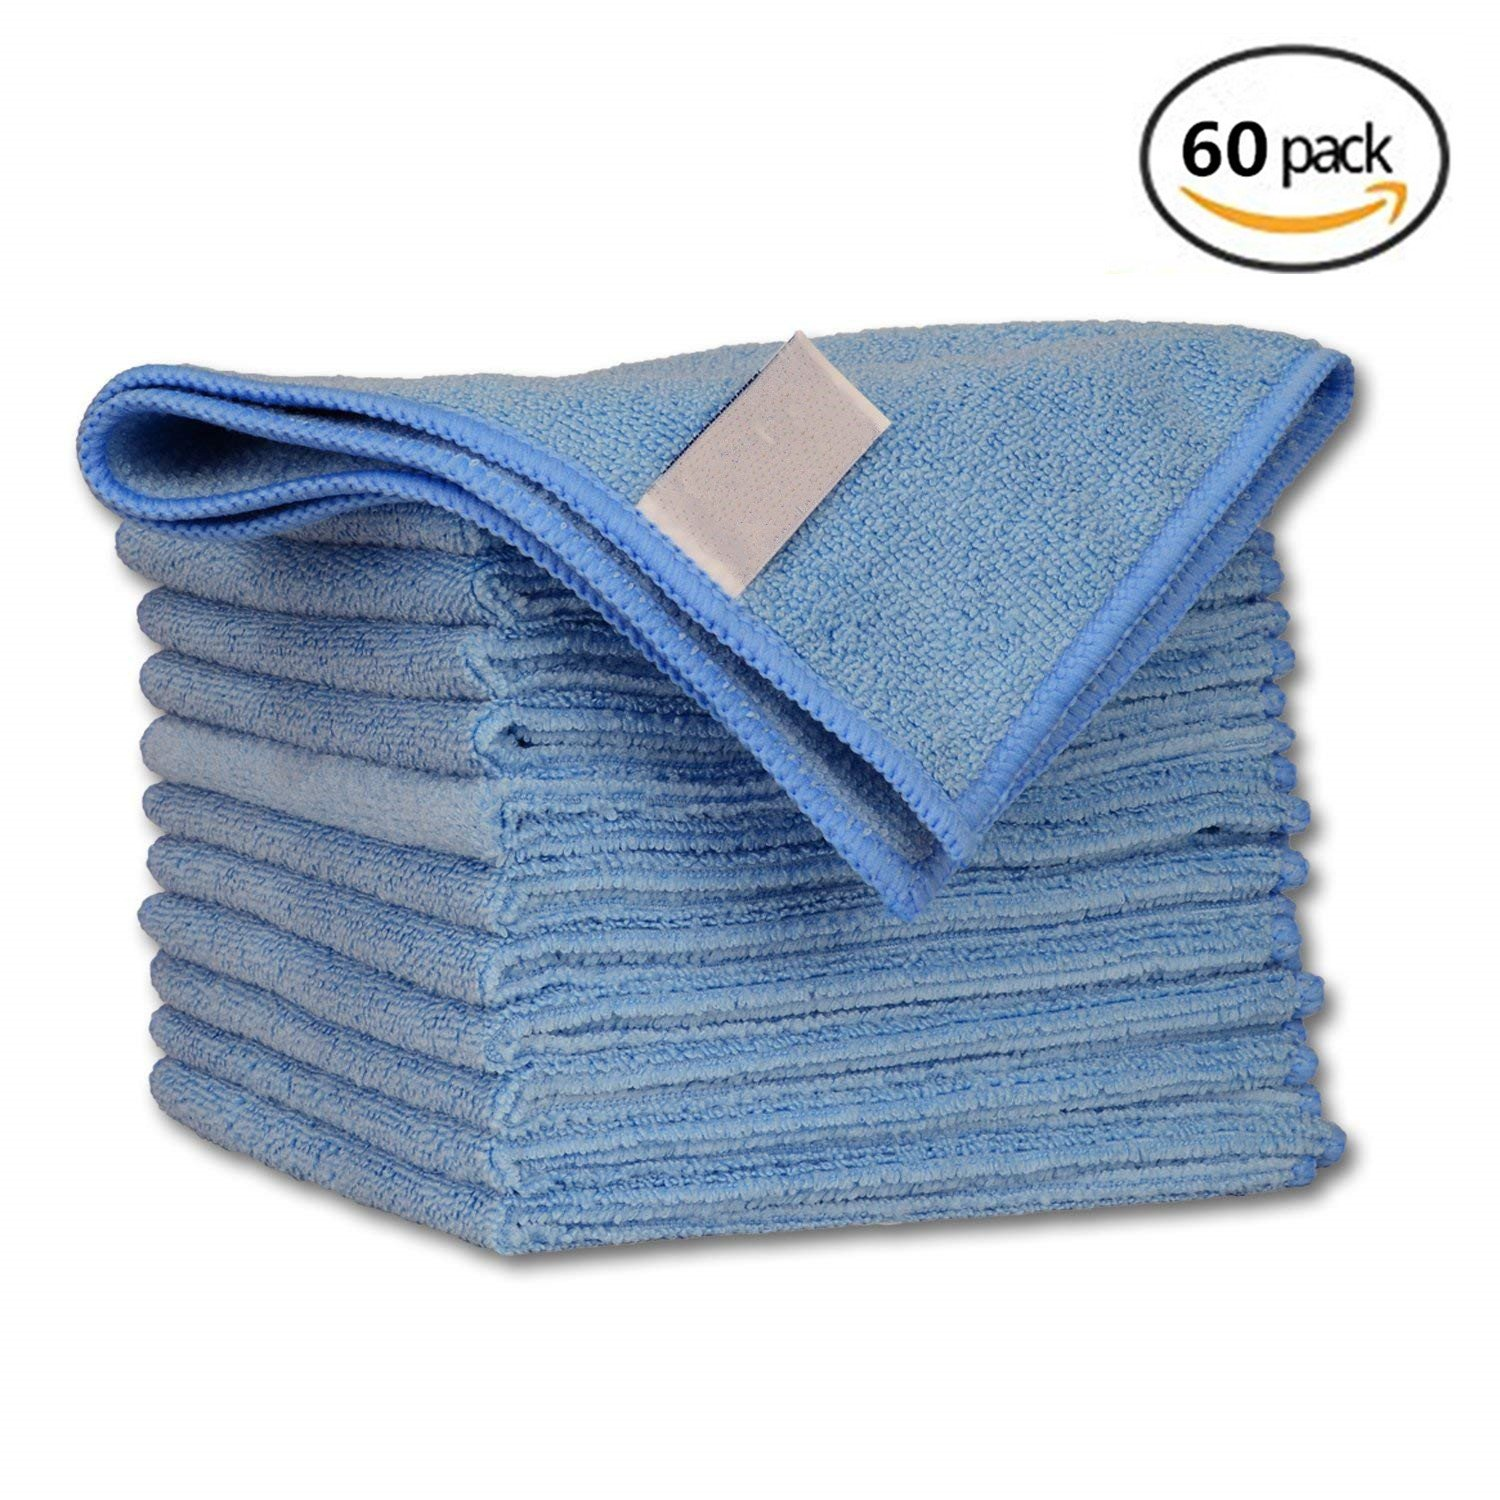 Geekinstyle Pro Multi-Purpose Microfiber Towel – 60 Pack | Premium Cleaning Cloths Rag for Kitchen Furniture Car | Clean, Dust, Polish, Absorb | Small 12''x12'' (Blue)